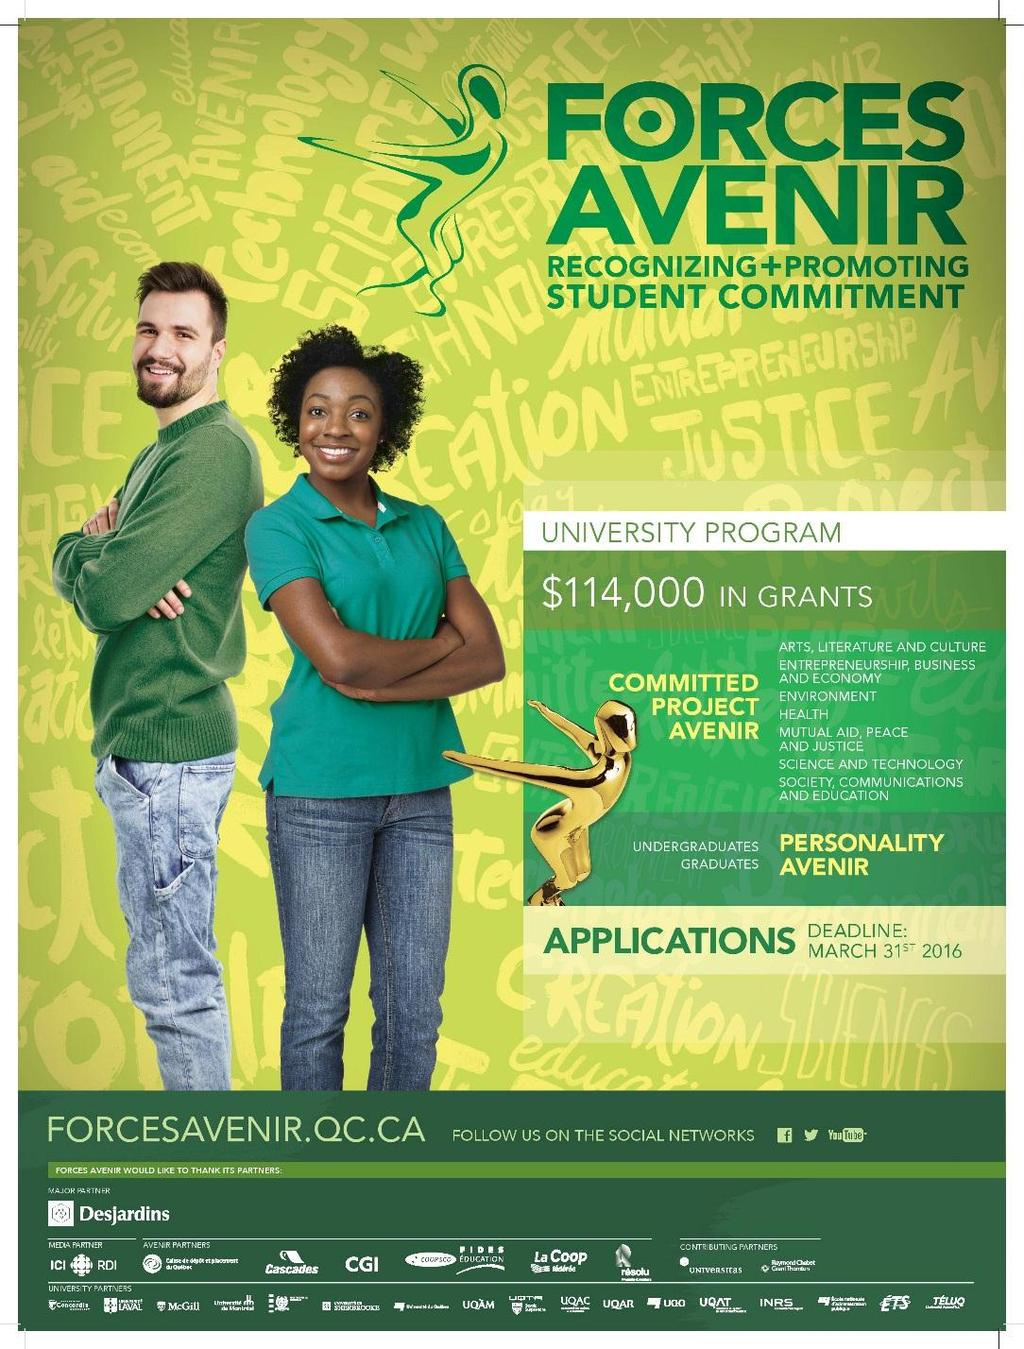 What is Forces AVENIR?